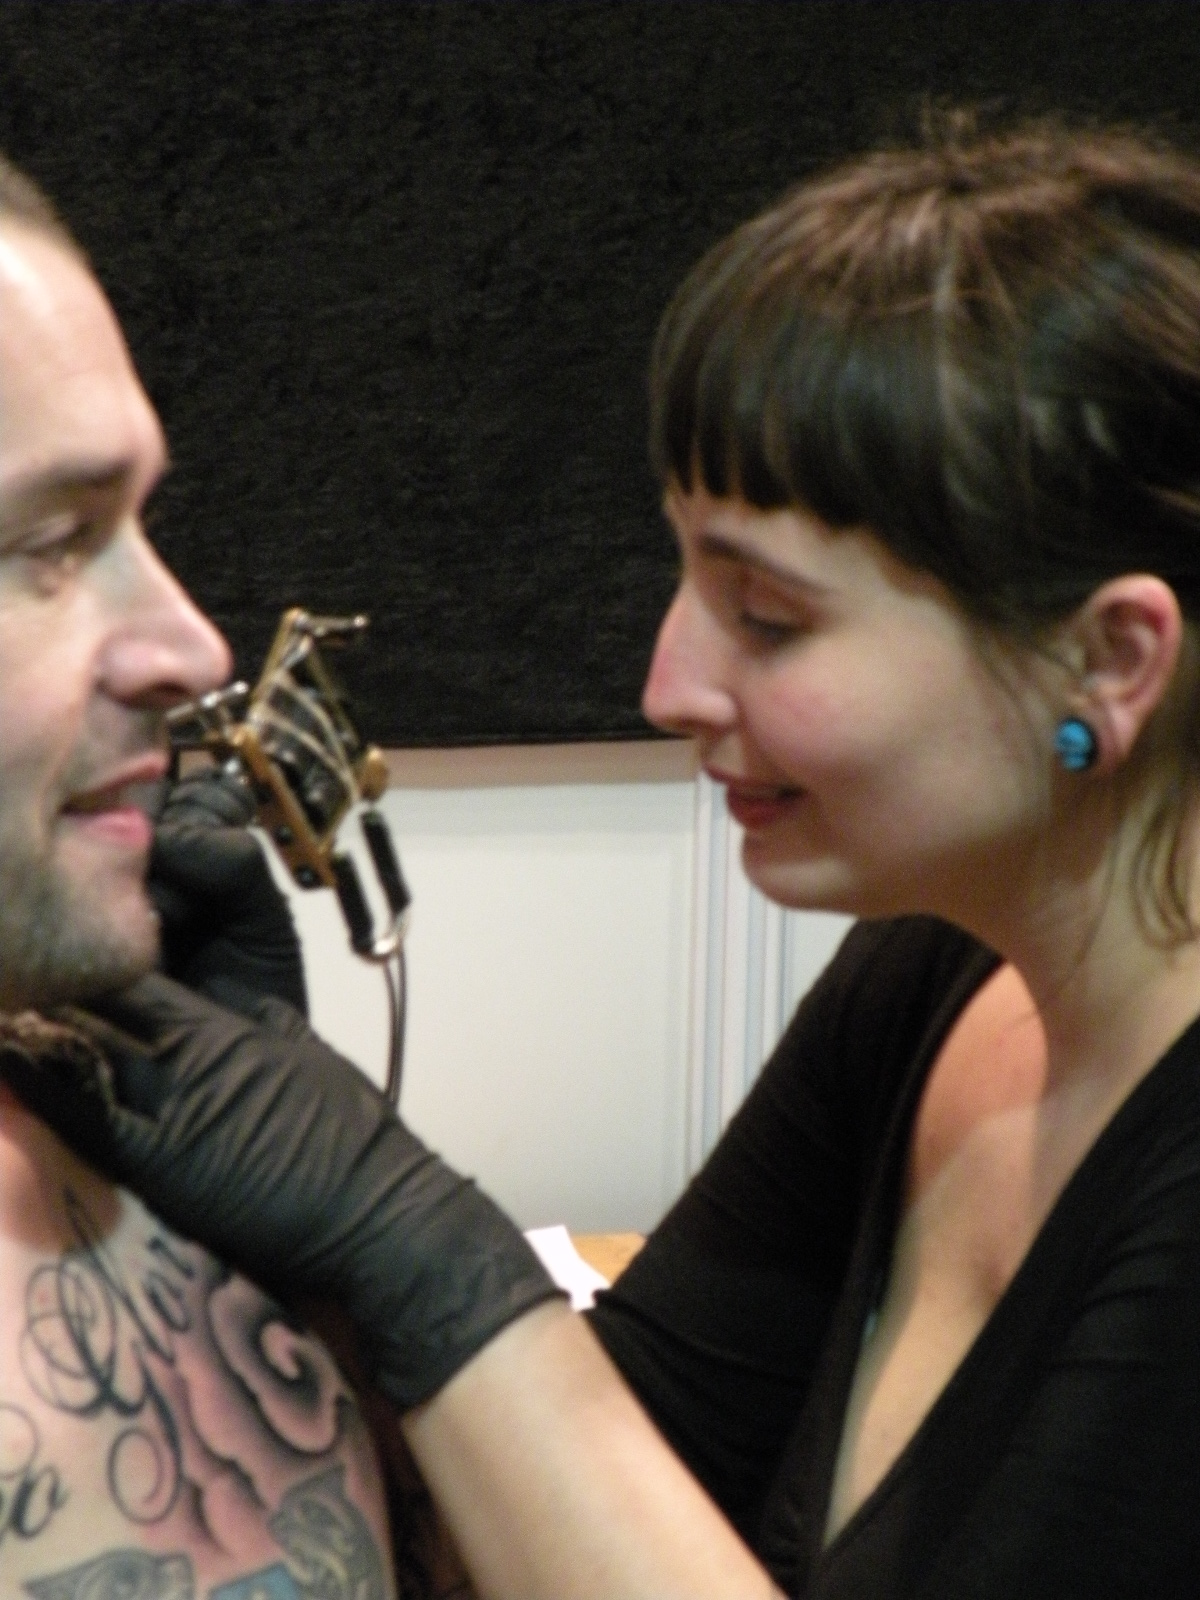 Convention Tatouage Bordeaux - Bordeaux Tattoo Convention April 2016